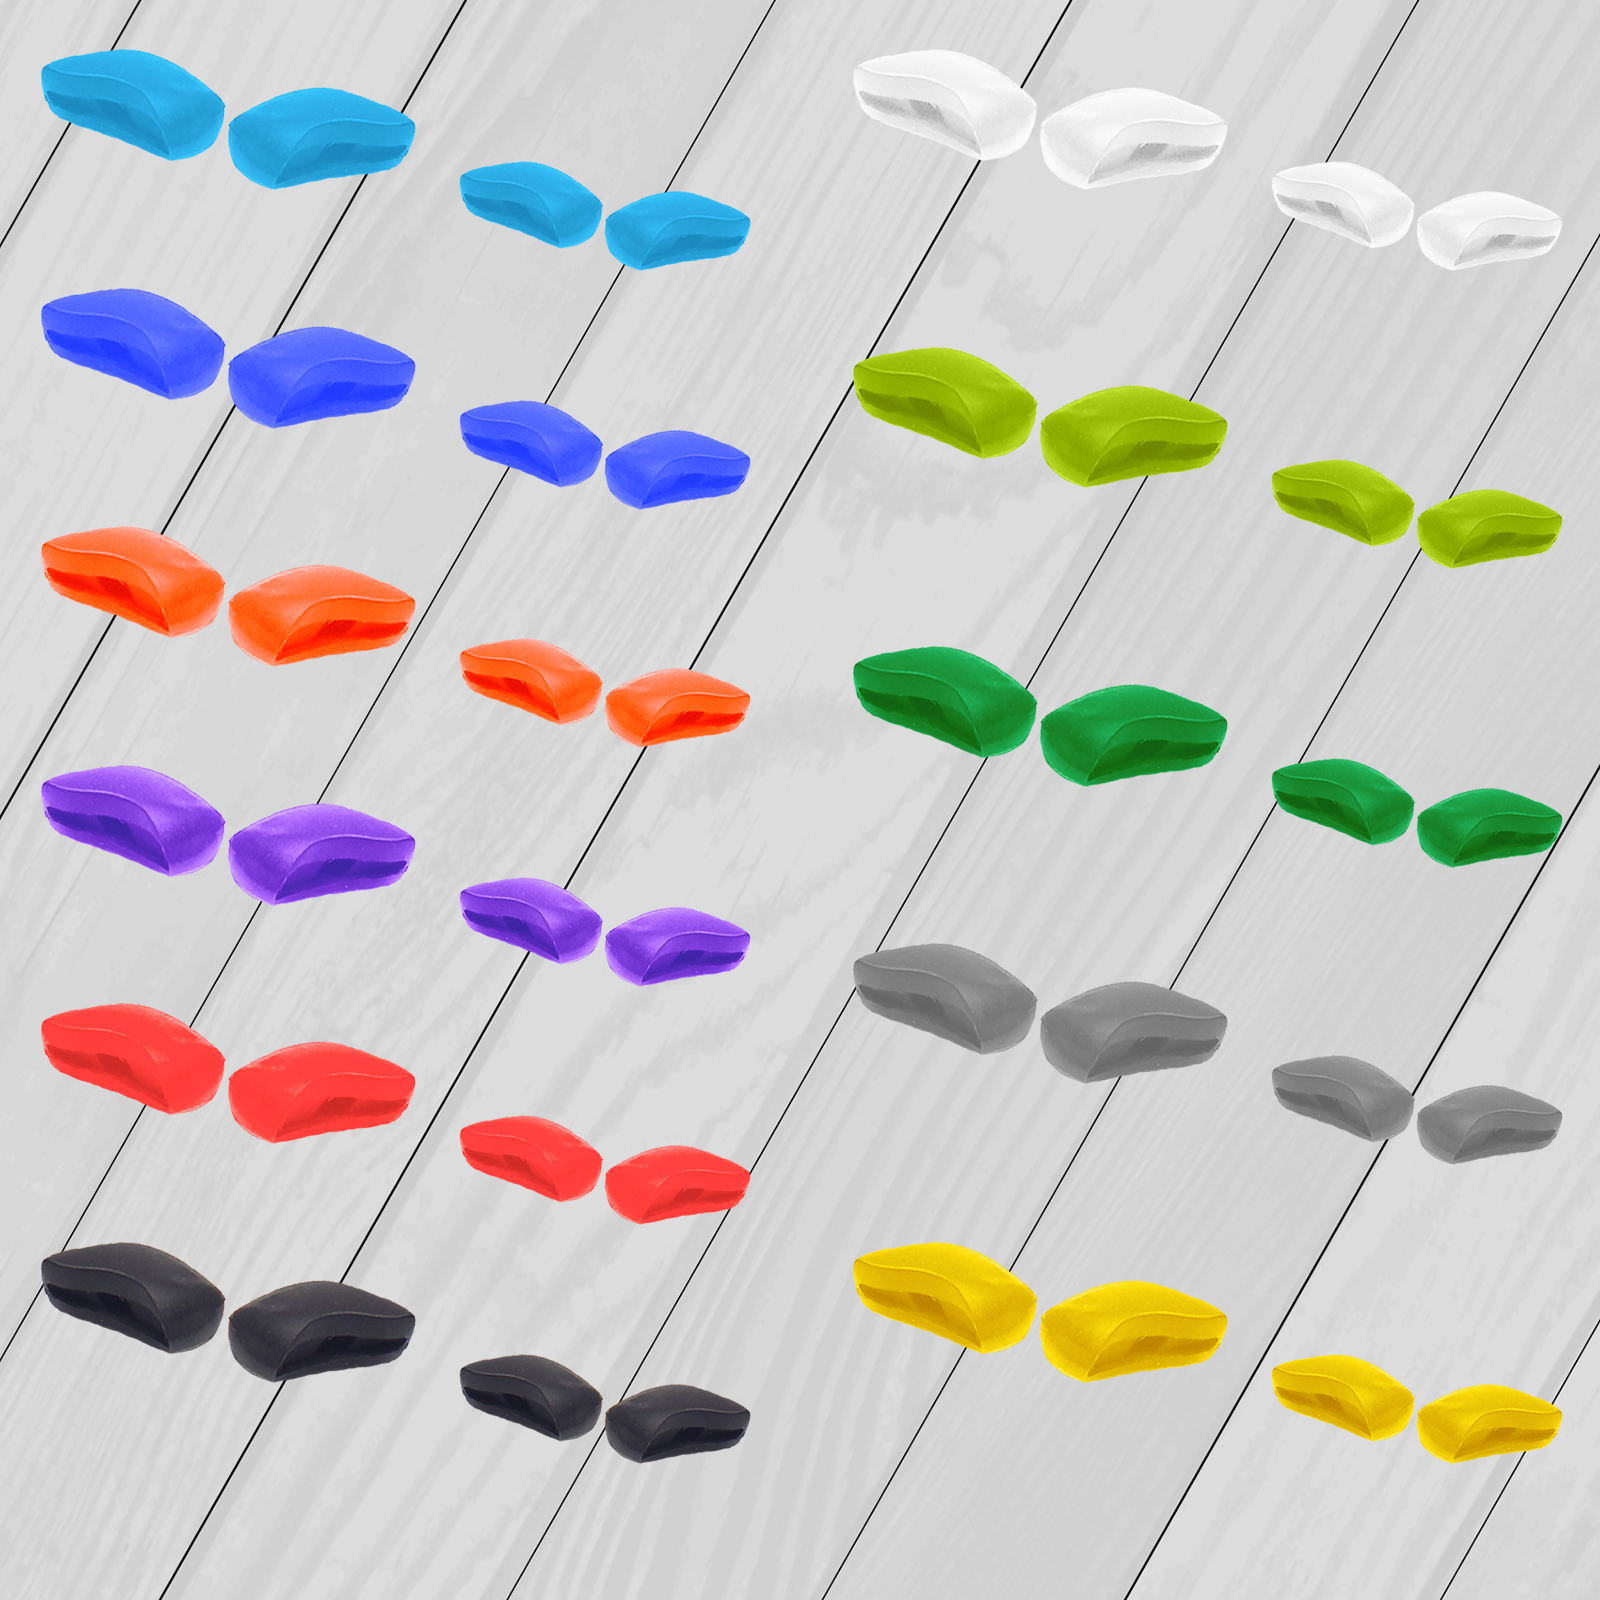 E.O.S Silicon Rubber Replacement Nose Pads For OAKLEY Fast Jacket OO9097 / Fast Jacket XL OO9156 Frame Multi-Options